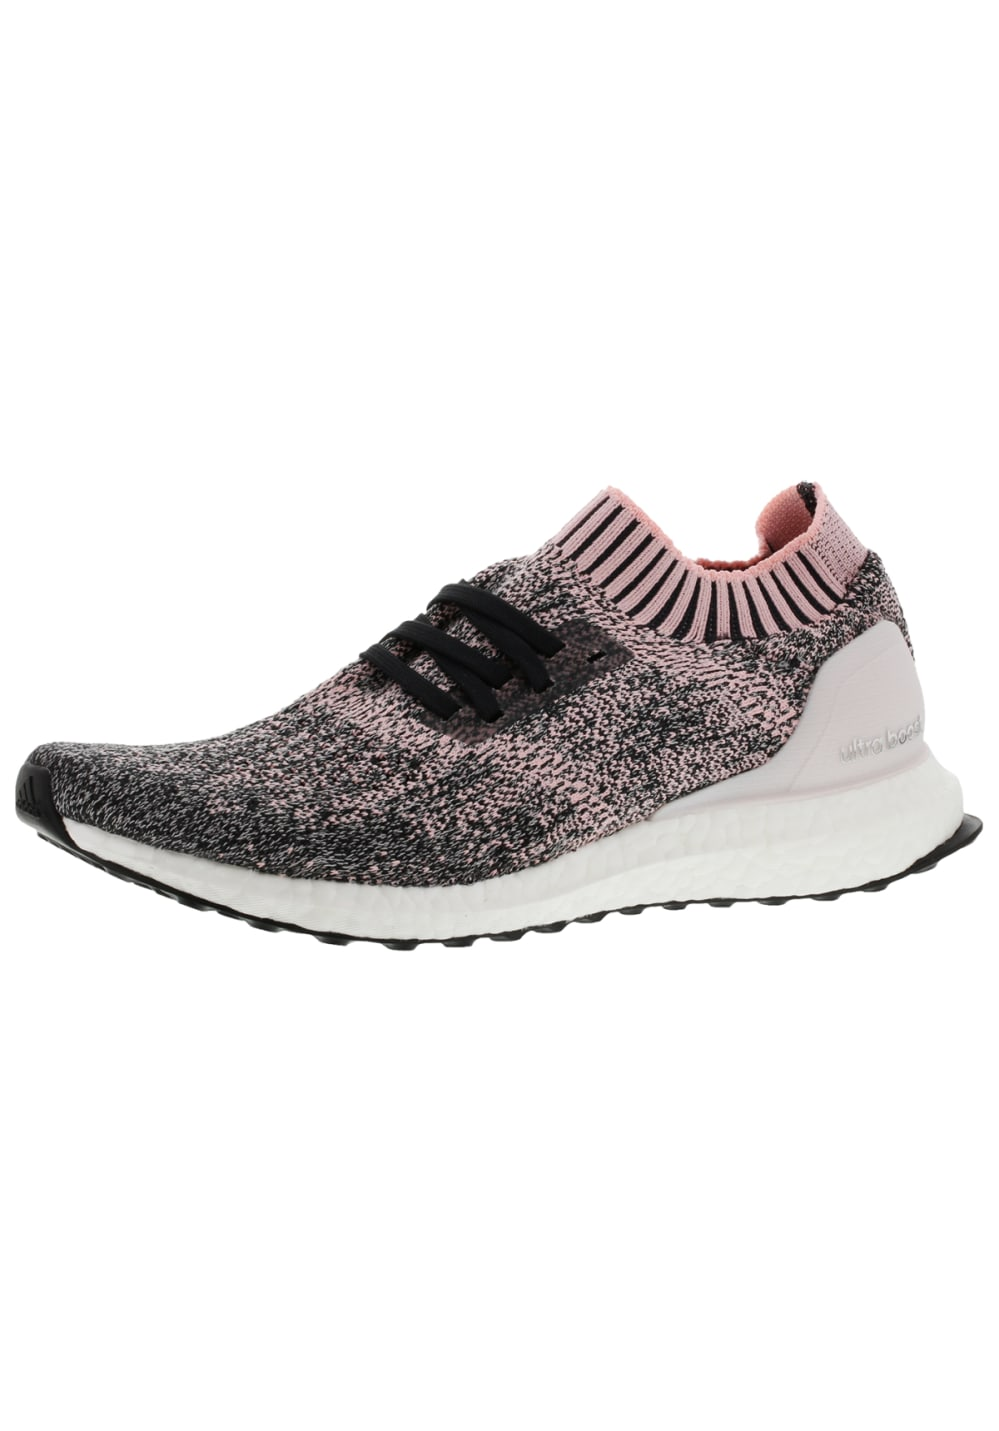 nouvelle arrivee 46984 25b34 adidas Ultra Boost Uncaged - Chaussures running pour Femme - Rose